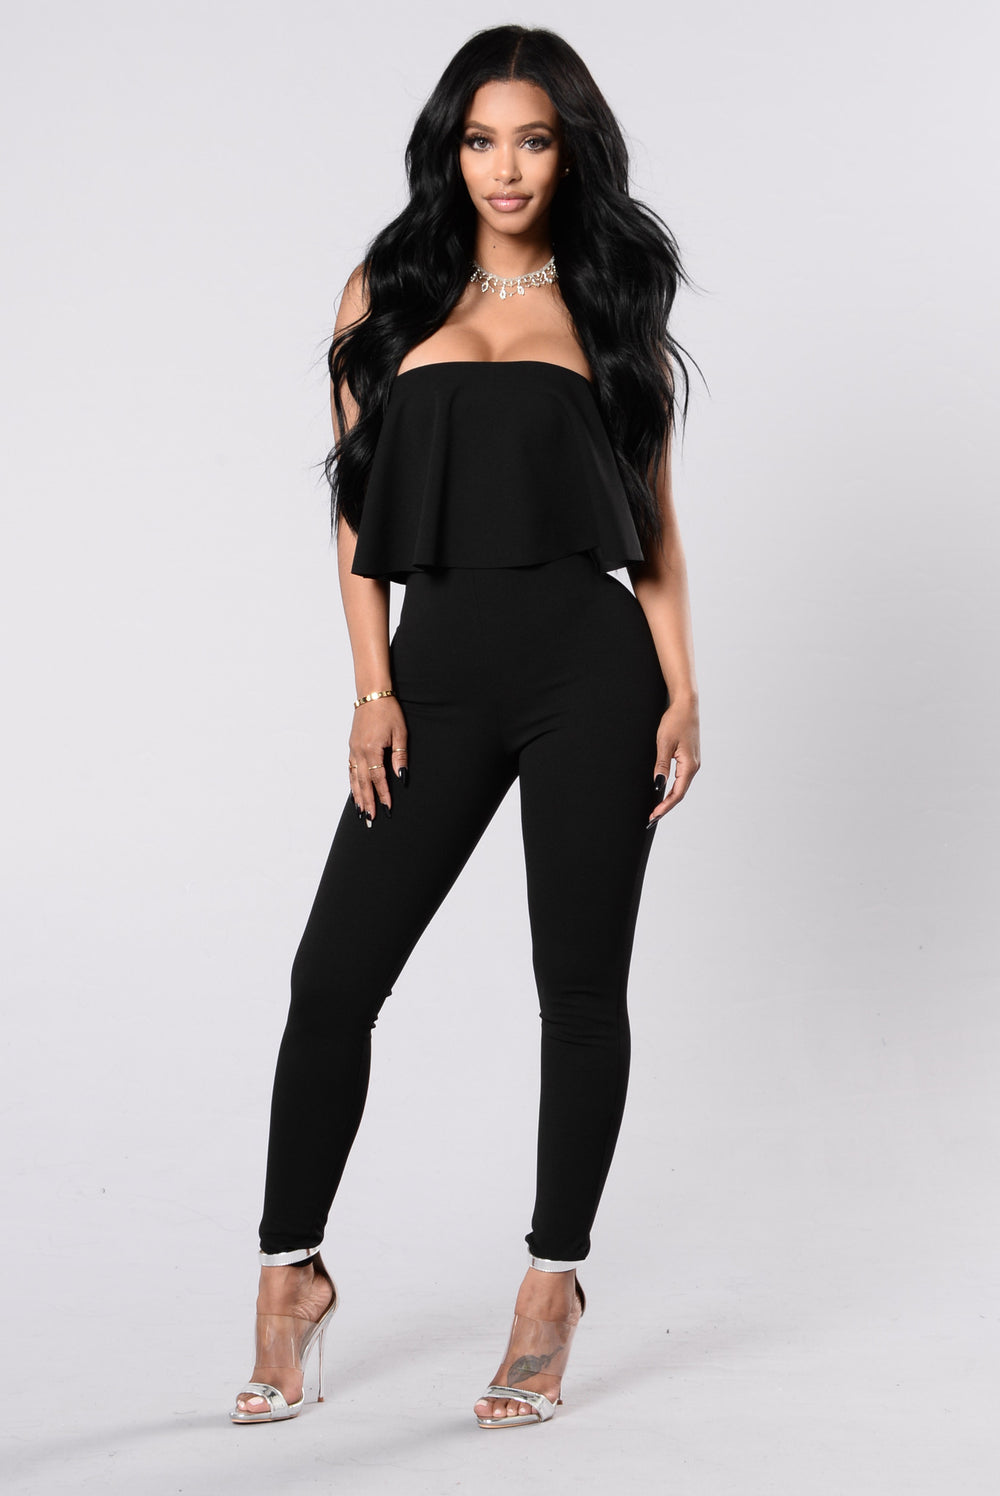 Soho Horse Jumpsuit - Black